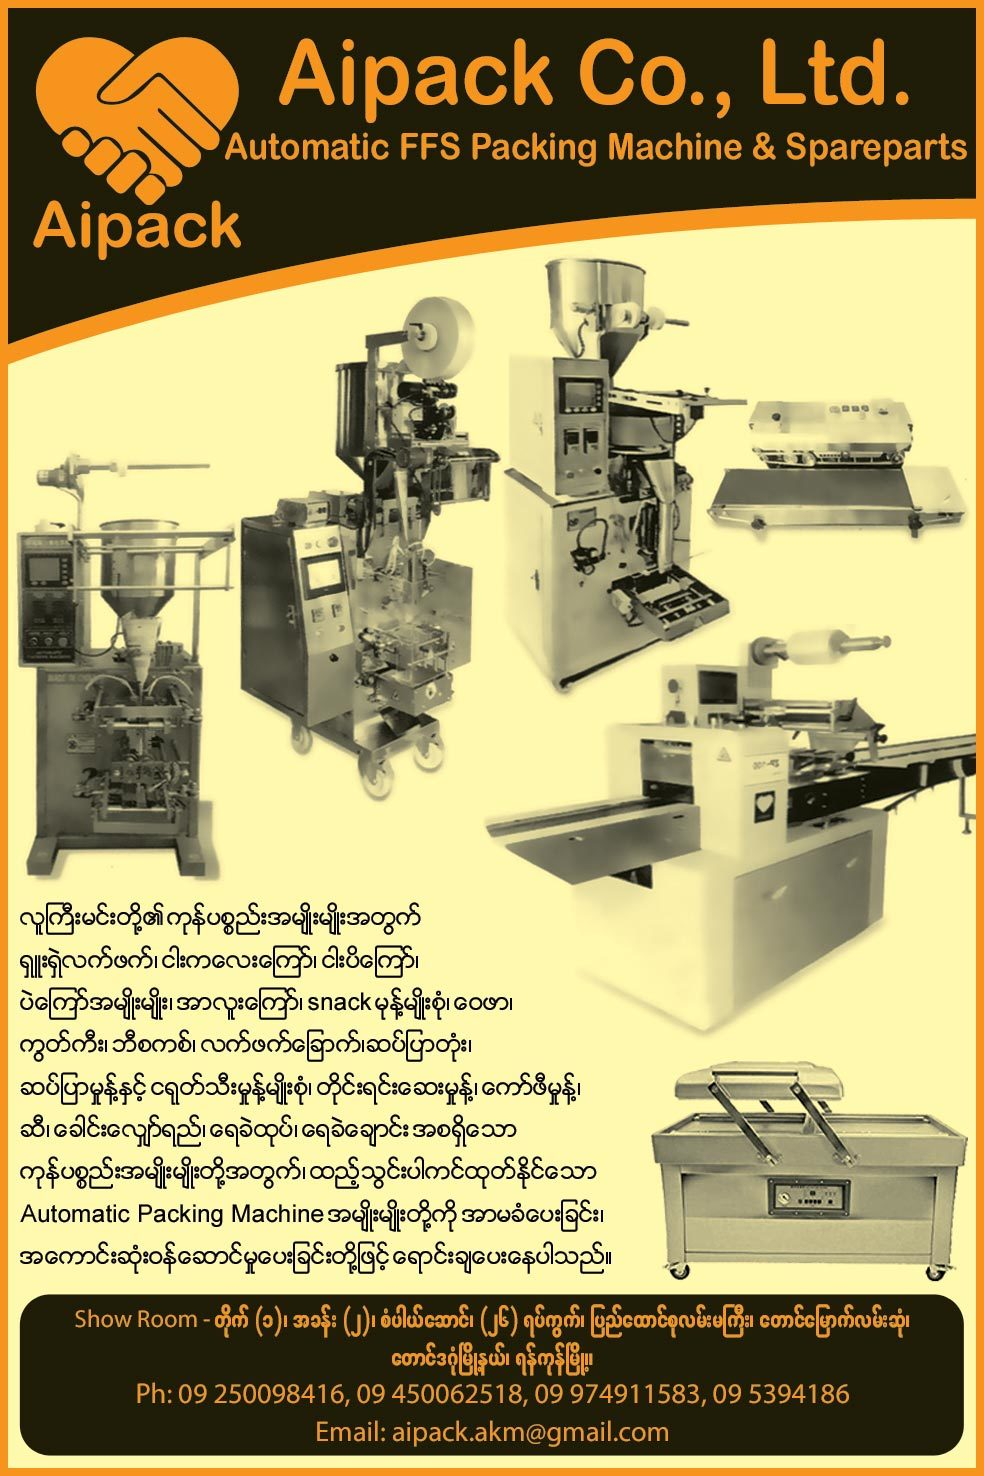 Aipack-Co-Ltd_Machinery-&-Spare-Parts-Dealers_(A)_1362.jpg